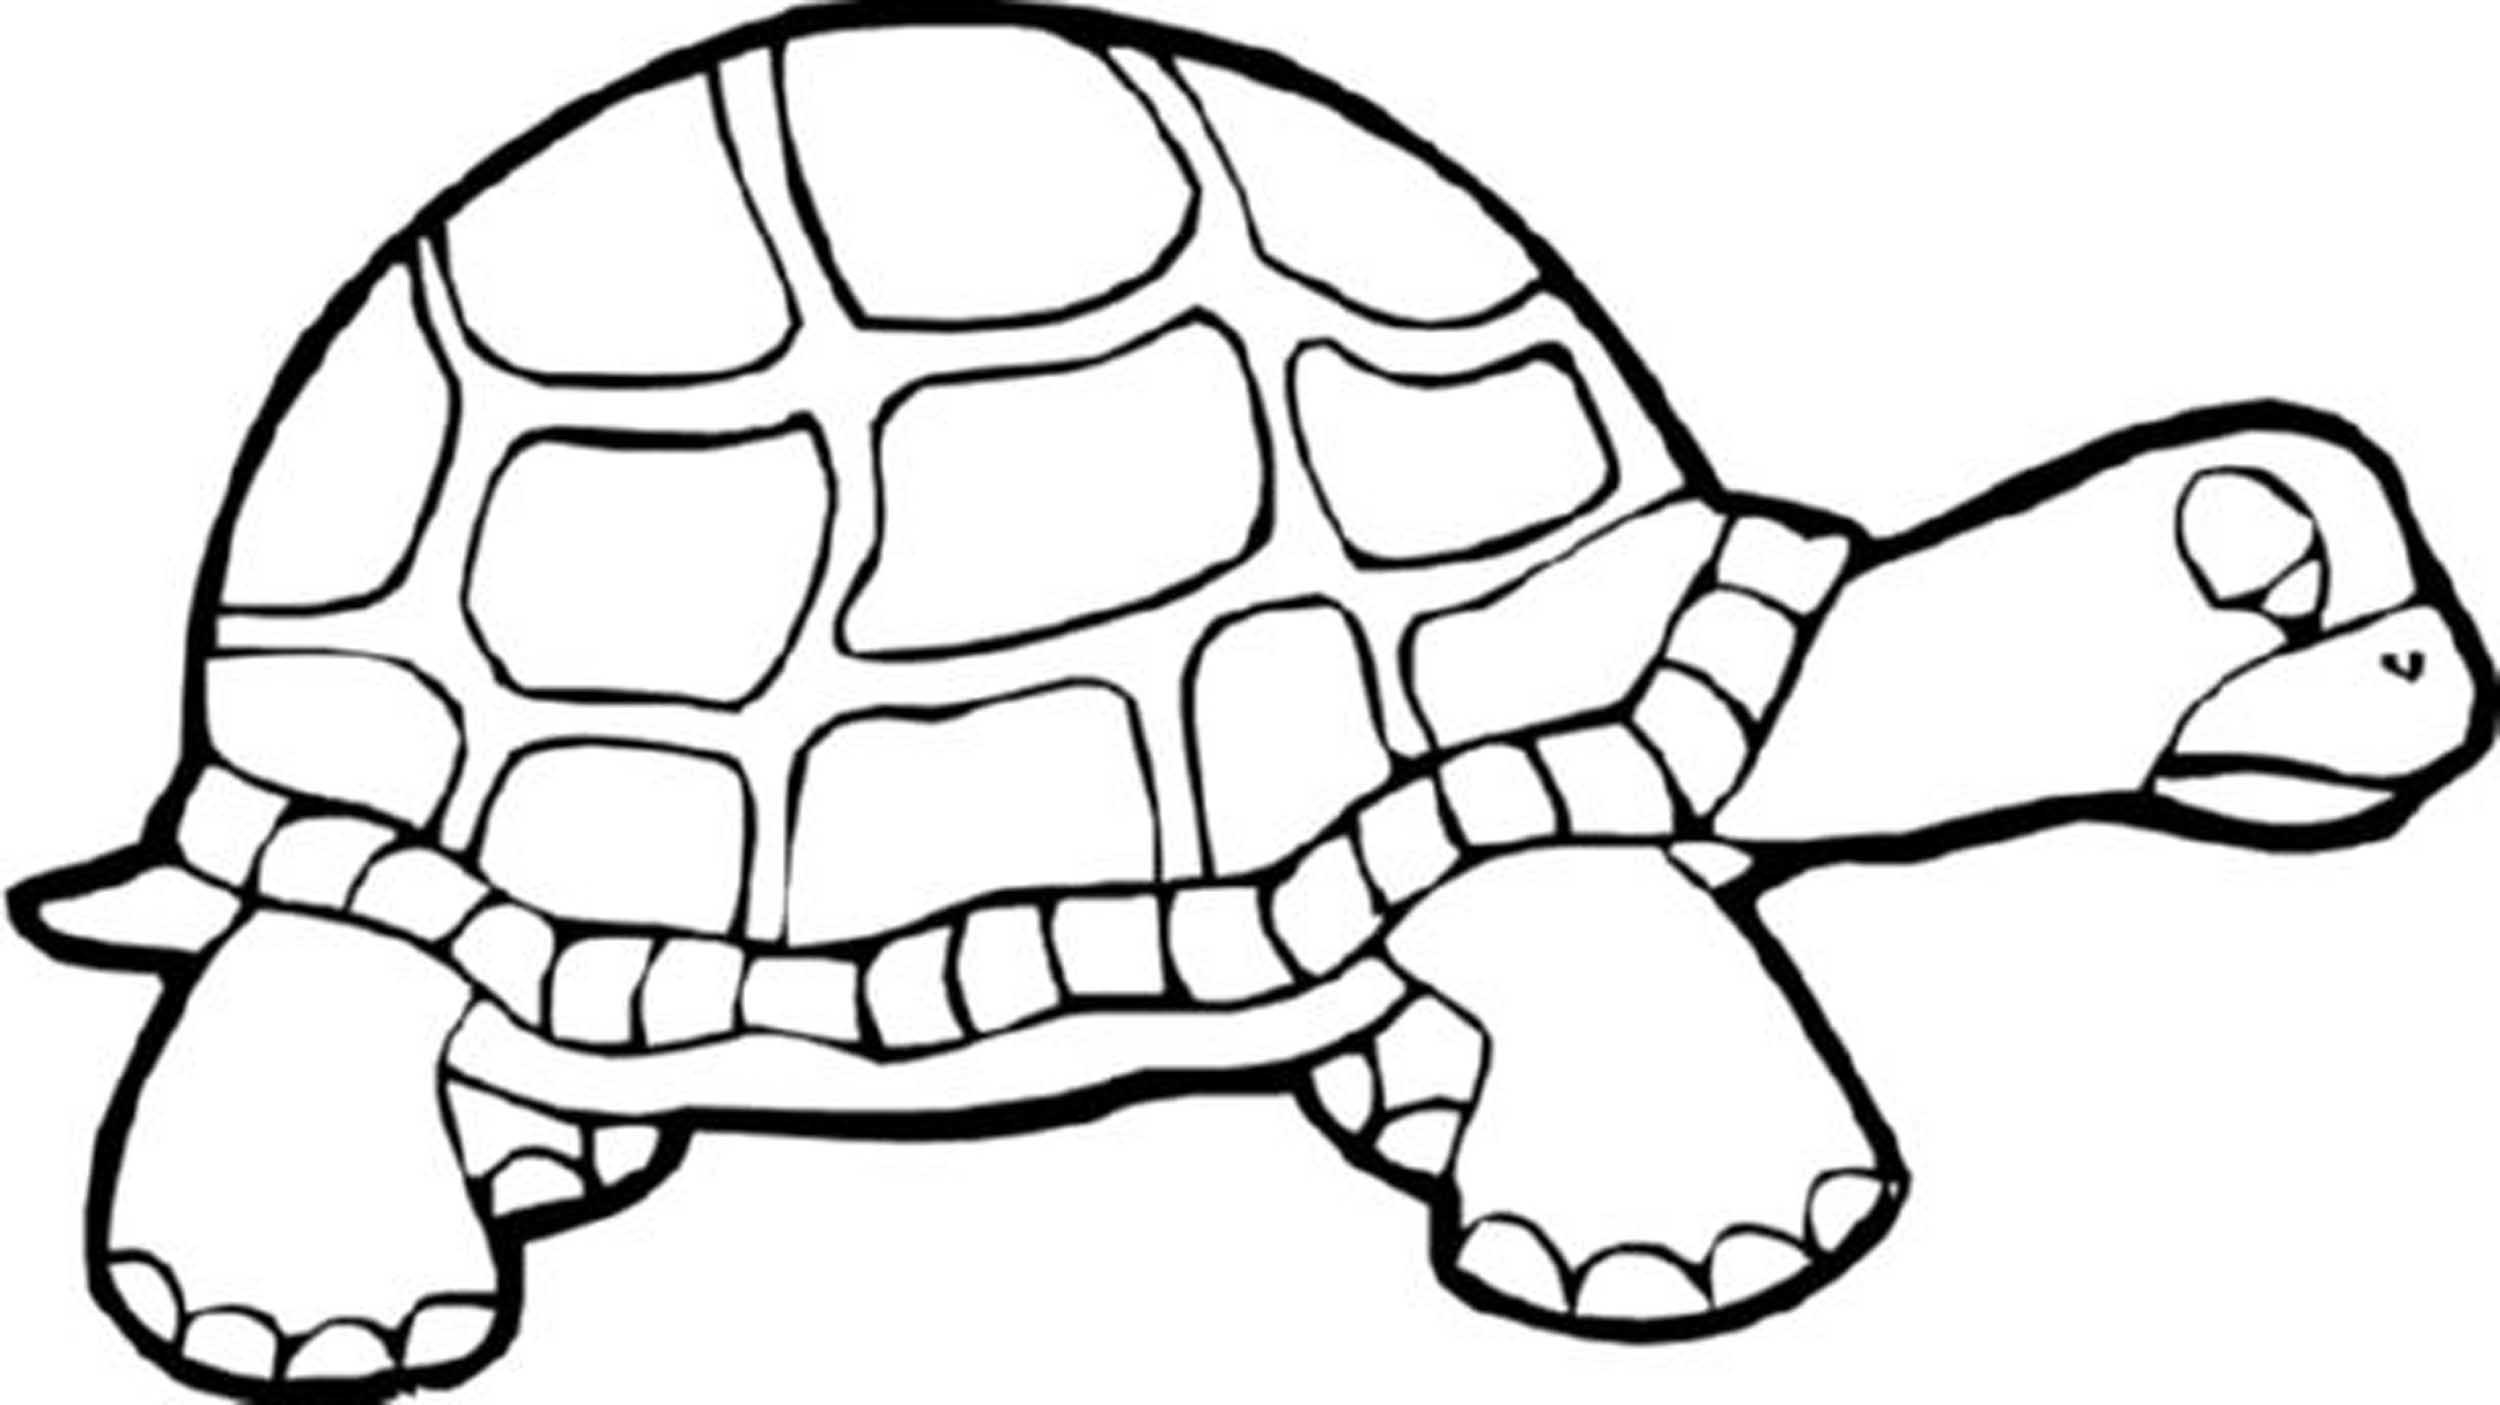 Turtles Coloring Book  Print & Download Turtle Coloring Pages as the